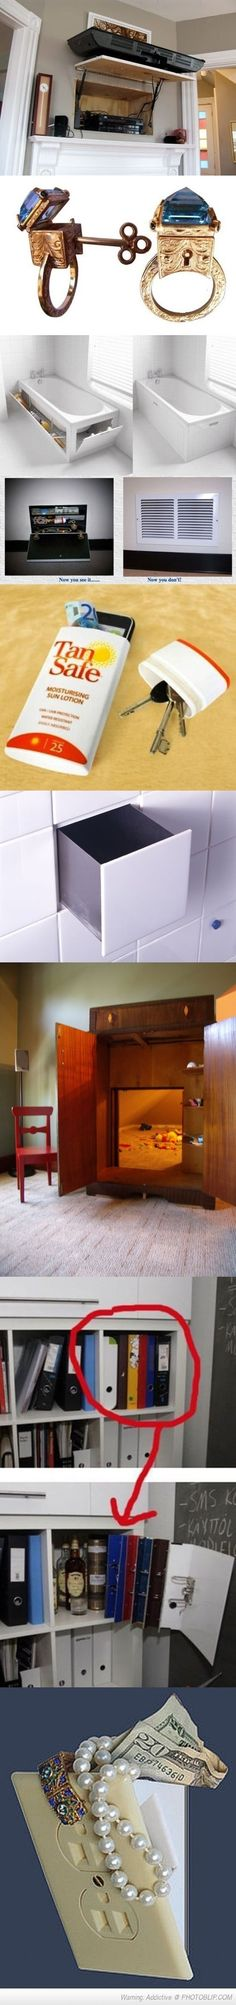 Awesome Hiding Places